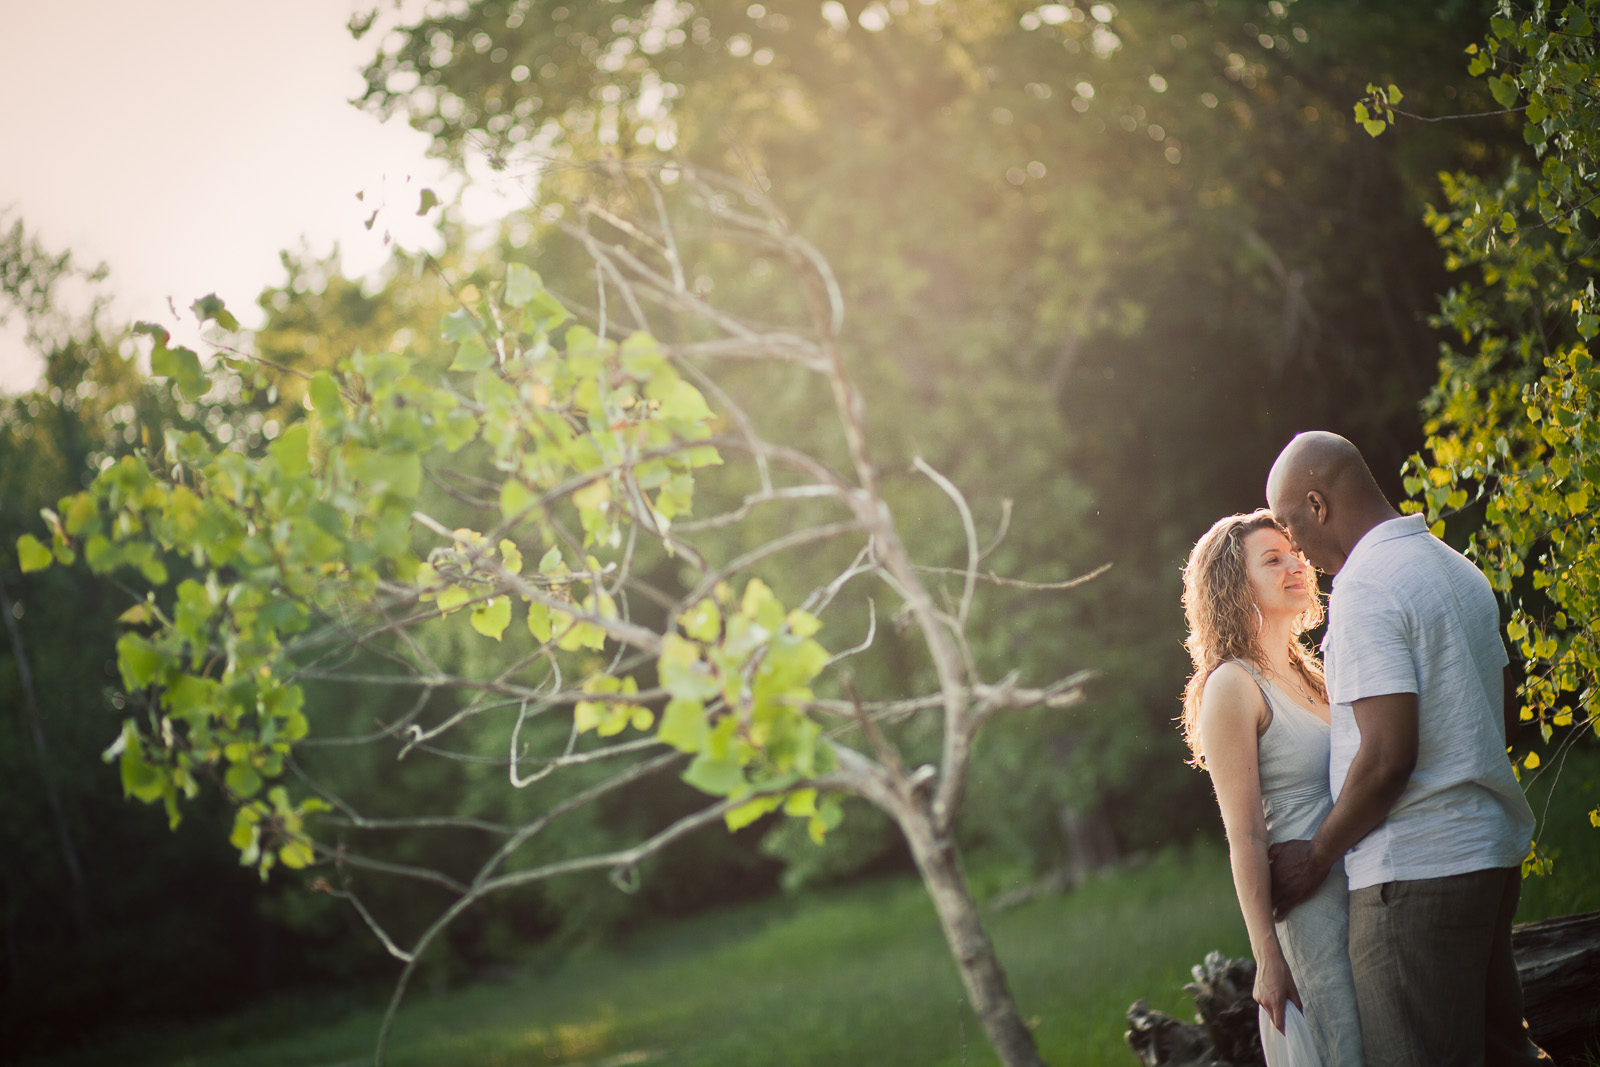 bianca-morello-photography-montreal-couple-engagement-wedding-5.jpg